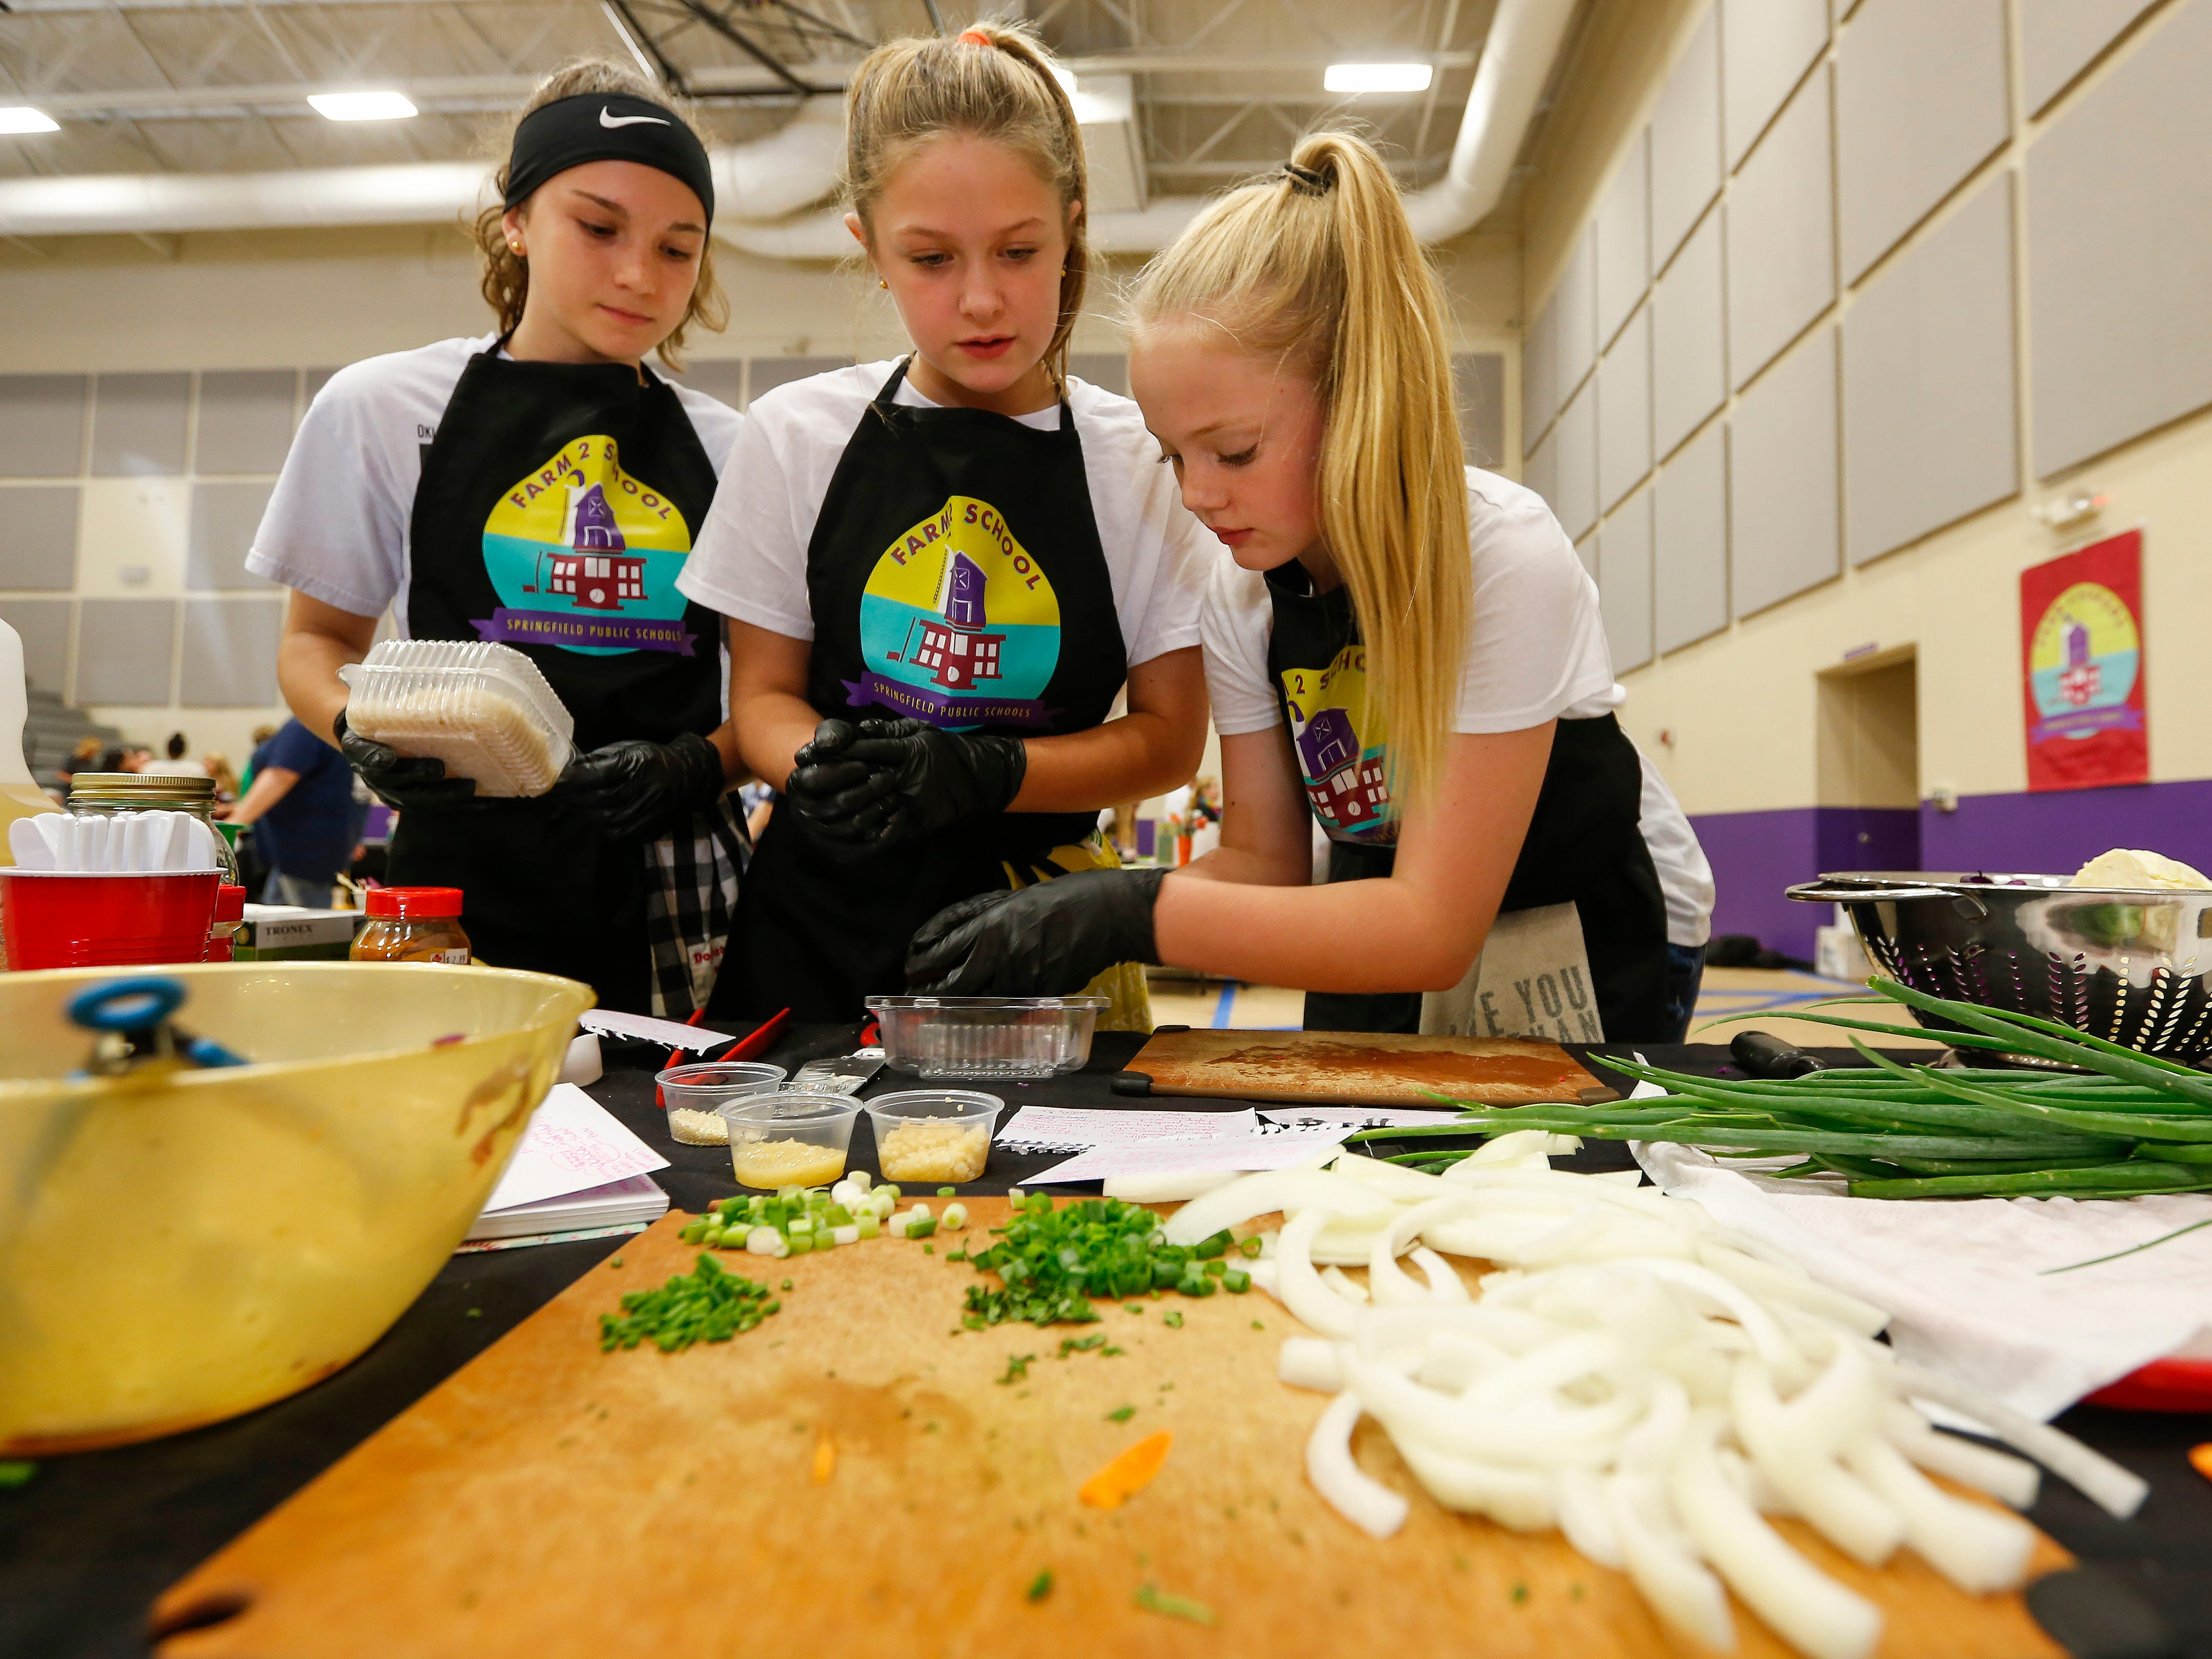 From left, Brooke Chaffin, Delaney Sisney and Kennedy Norman, students at Cherokee Middle School, prepare their dish during the third annual Junior Chef Competition at Hickory Hills Middle School on Saturday, Sept. 29, 2018.